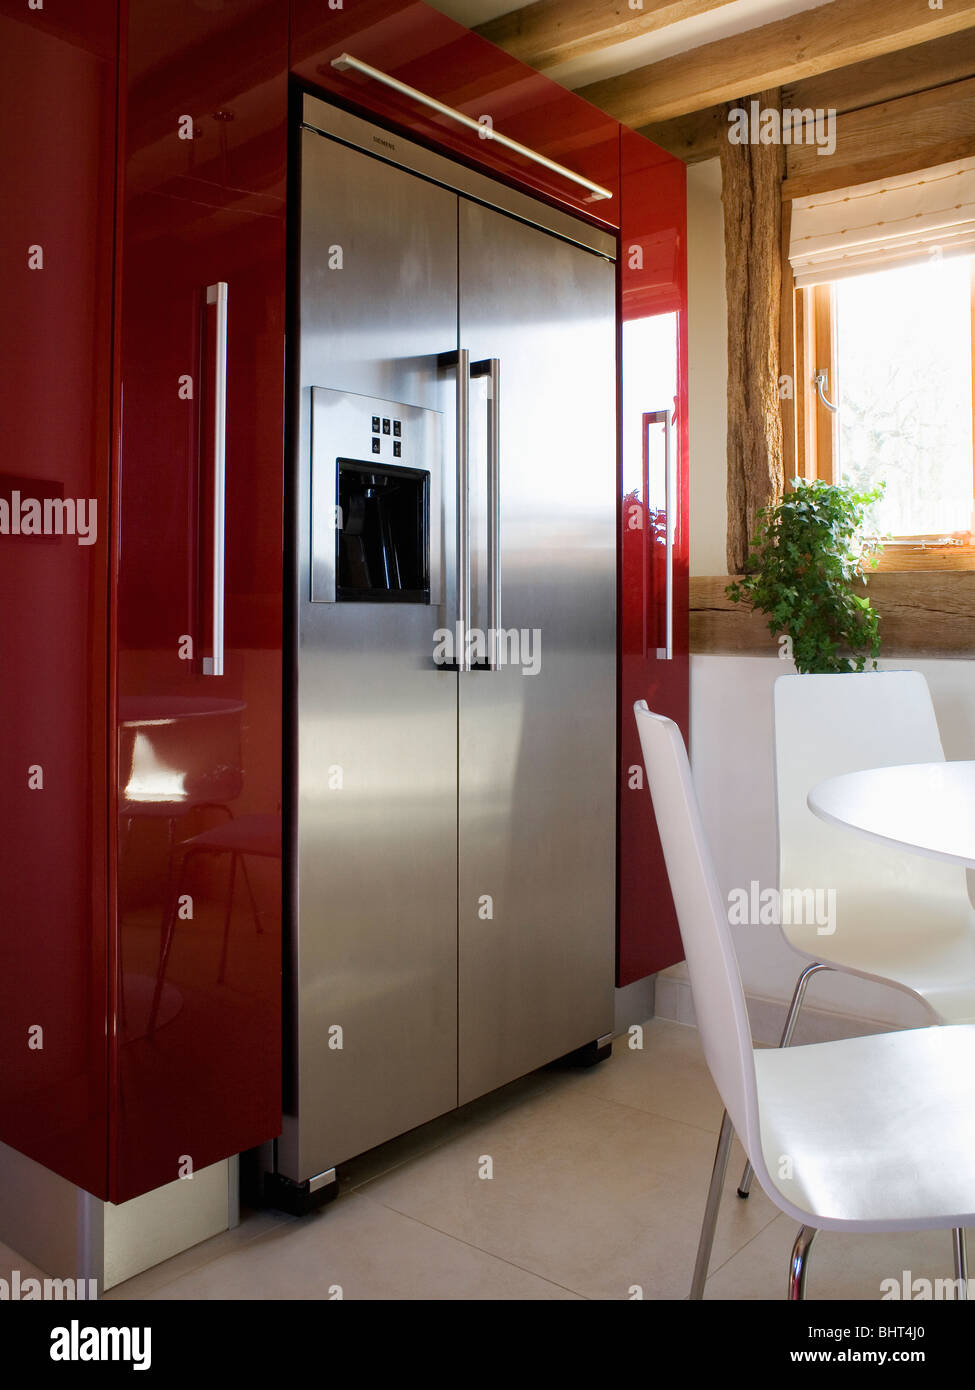 American style kitchen and living room -  Large Stainless Steel American Style Fridge Freezer In Modern Kitchen Dining Room With